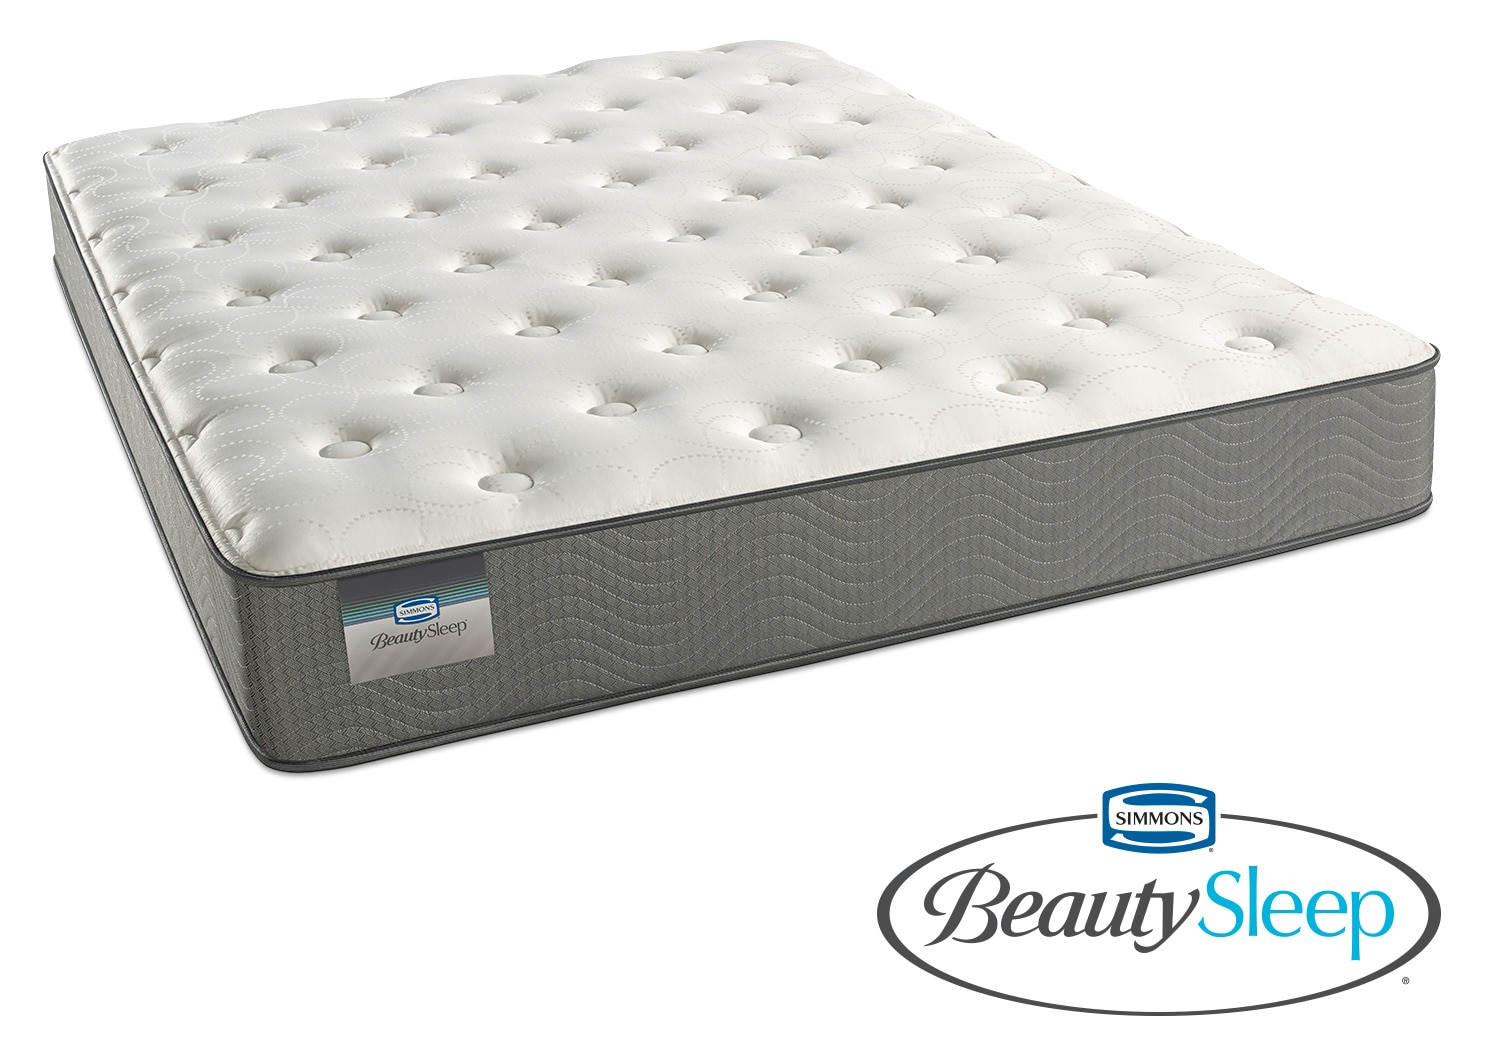 Mattresses and Bedding - Sapphire BLue Luxury Firm Full Mattress